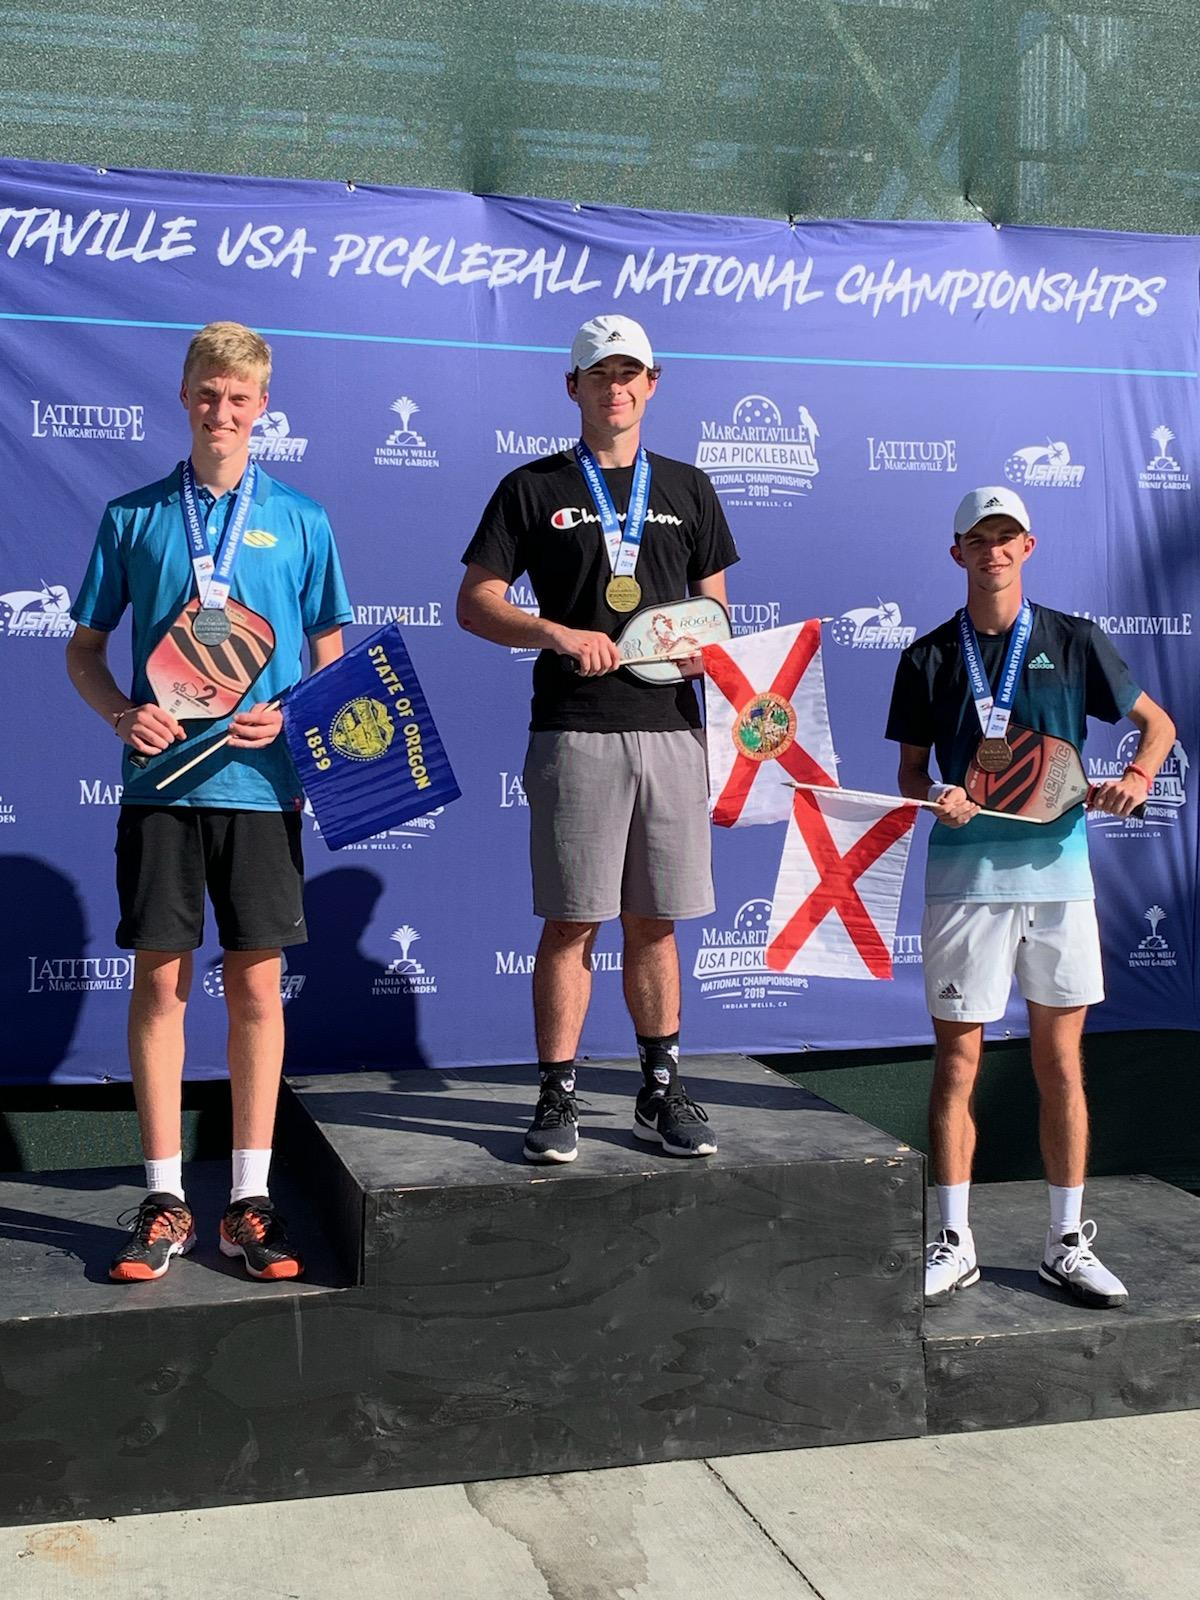 Jack Foster Wins Gold at Nationals with Players Pickleball!